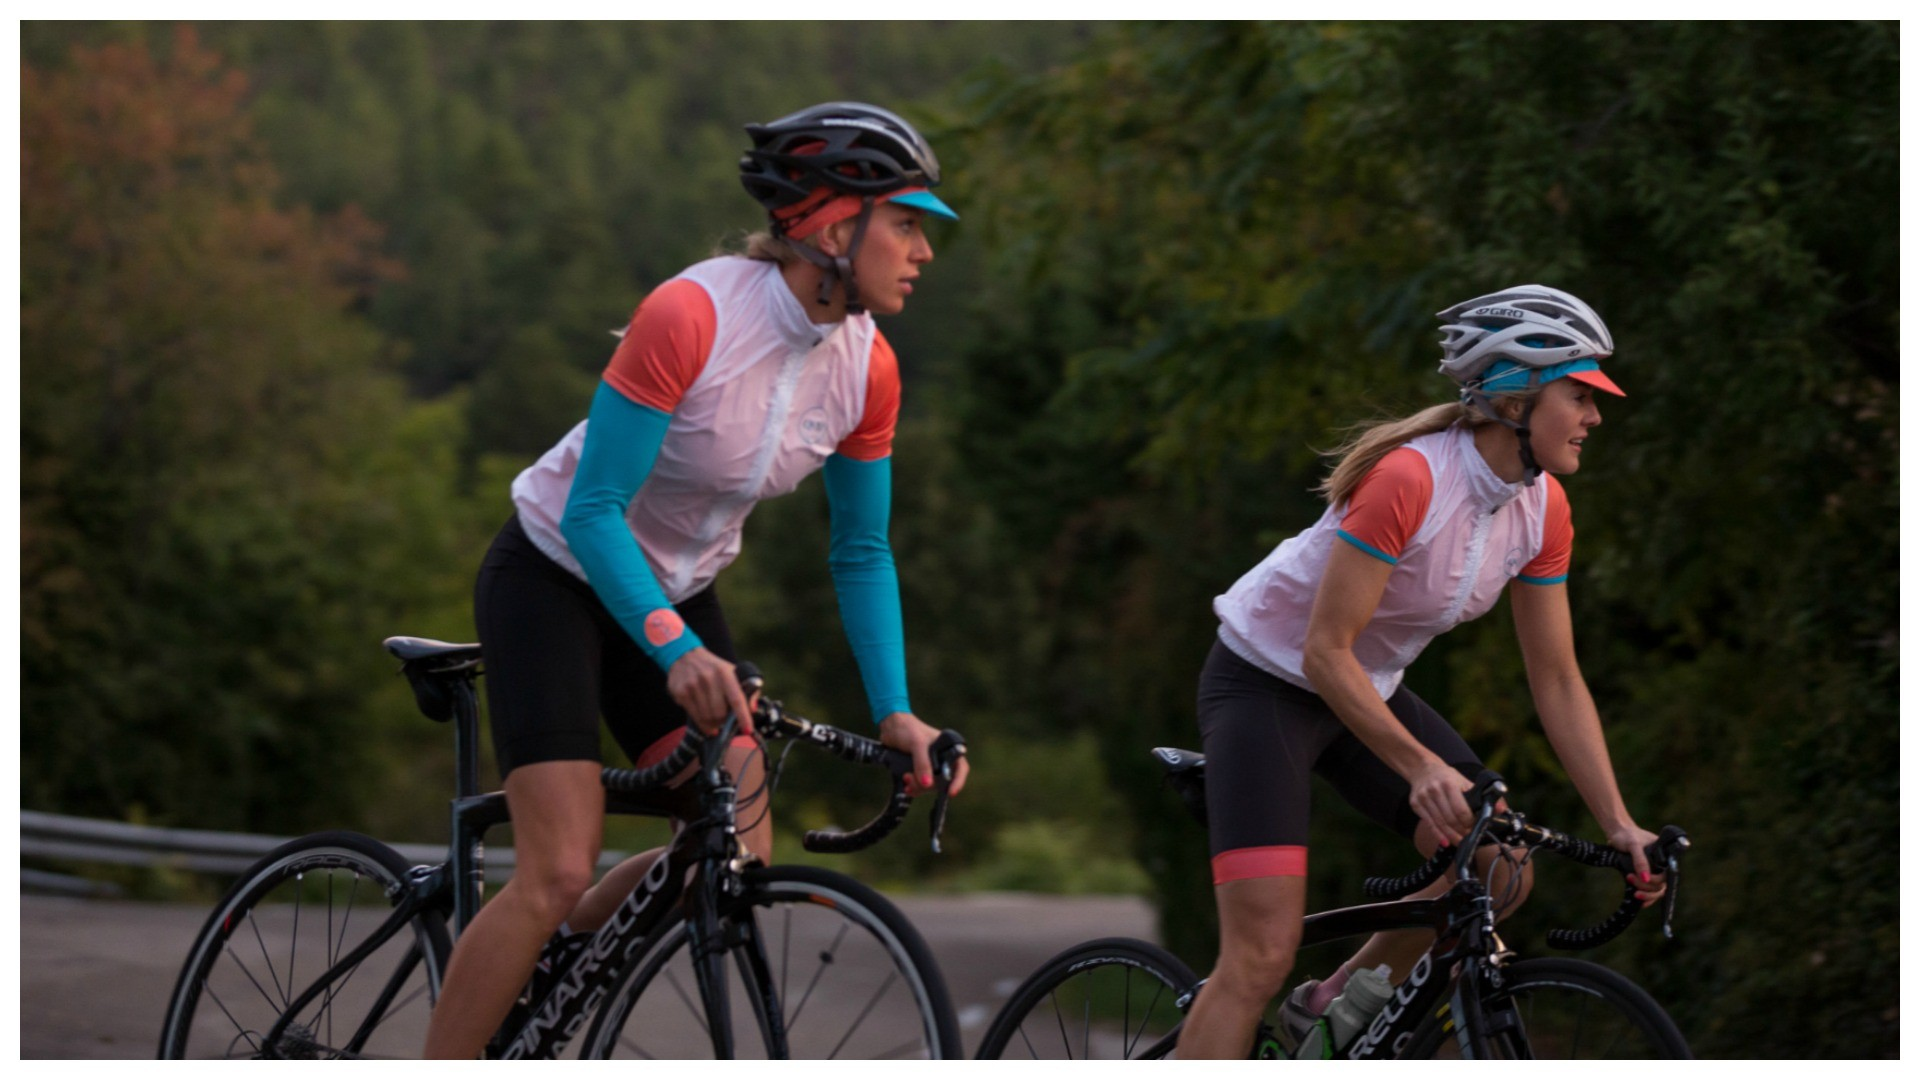 Queen of the Mountains not only produces women's road cycling kit, but also run frequent rides